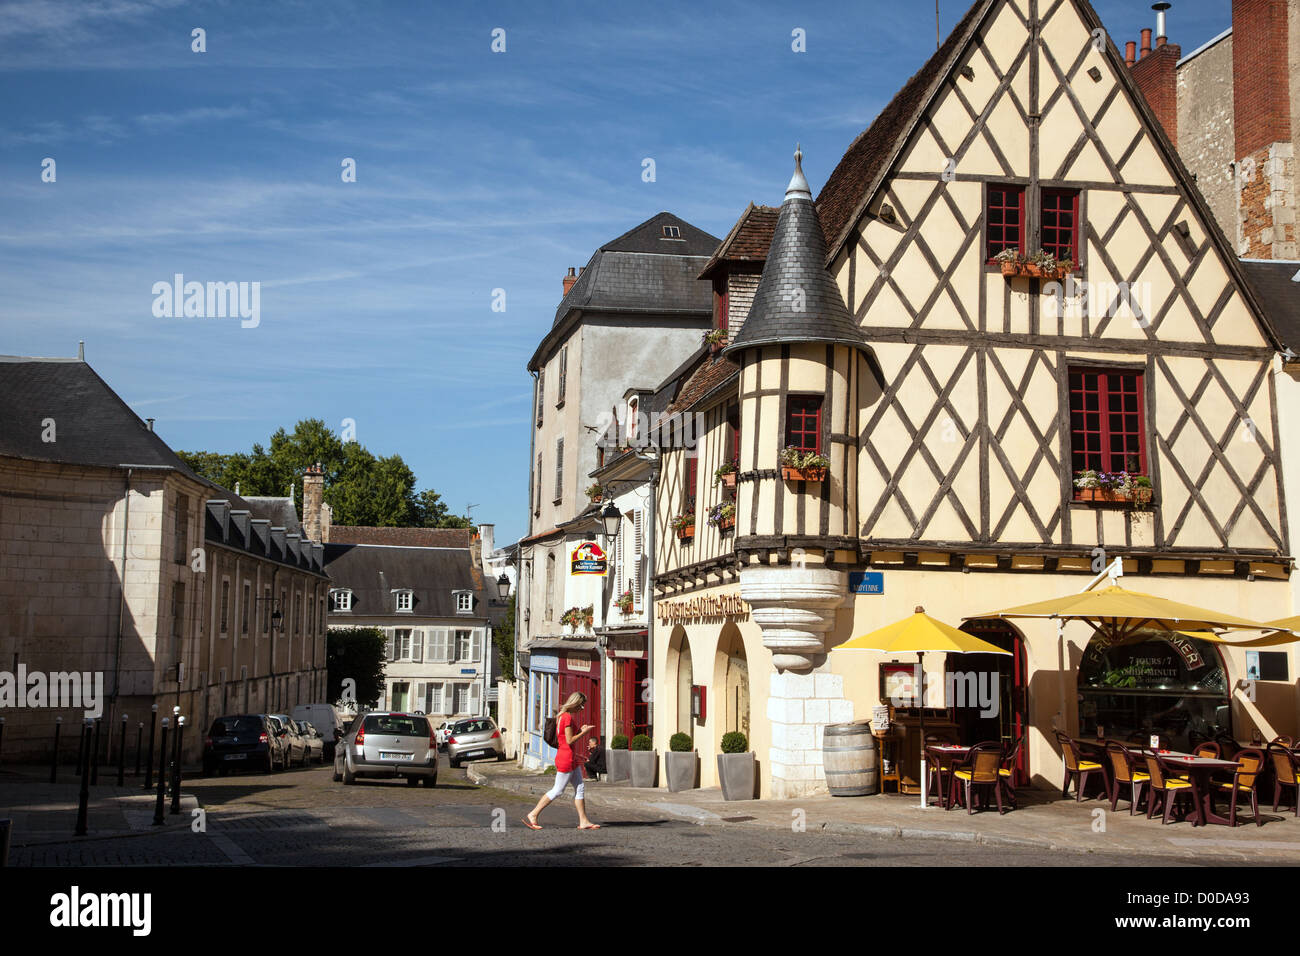 Half timbered house with a corbelled turret old town of bourges stock photo royalty free image - Stock industriel bourges ...